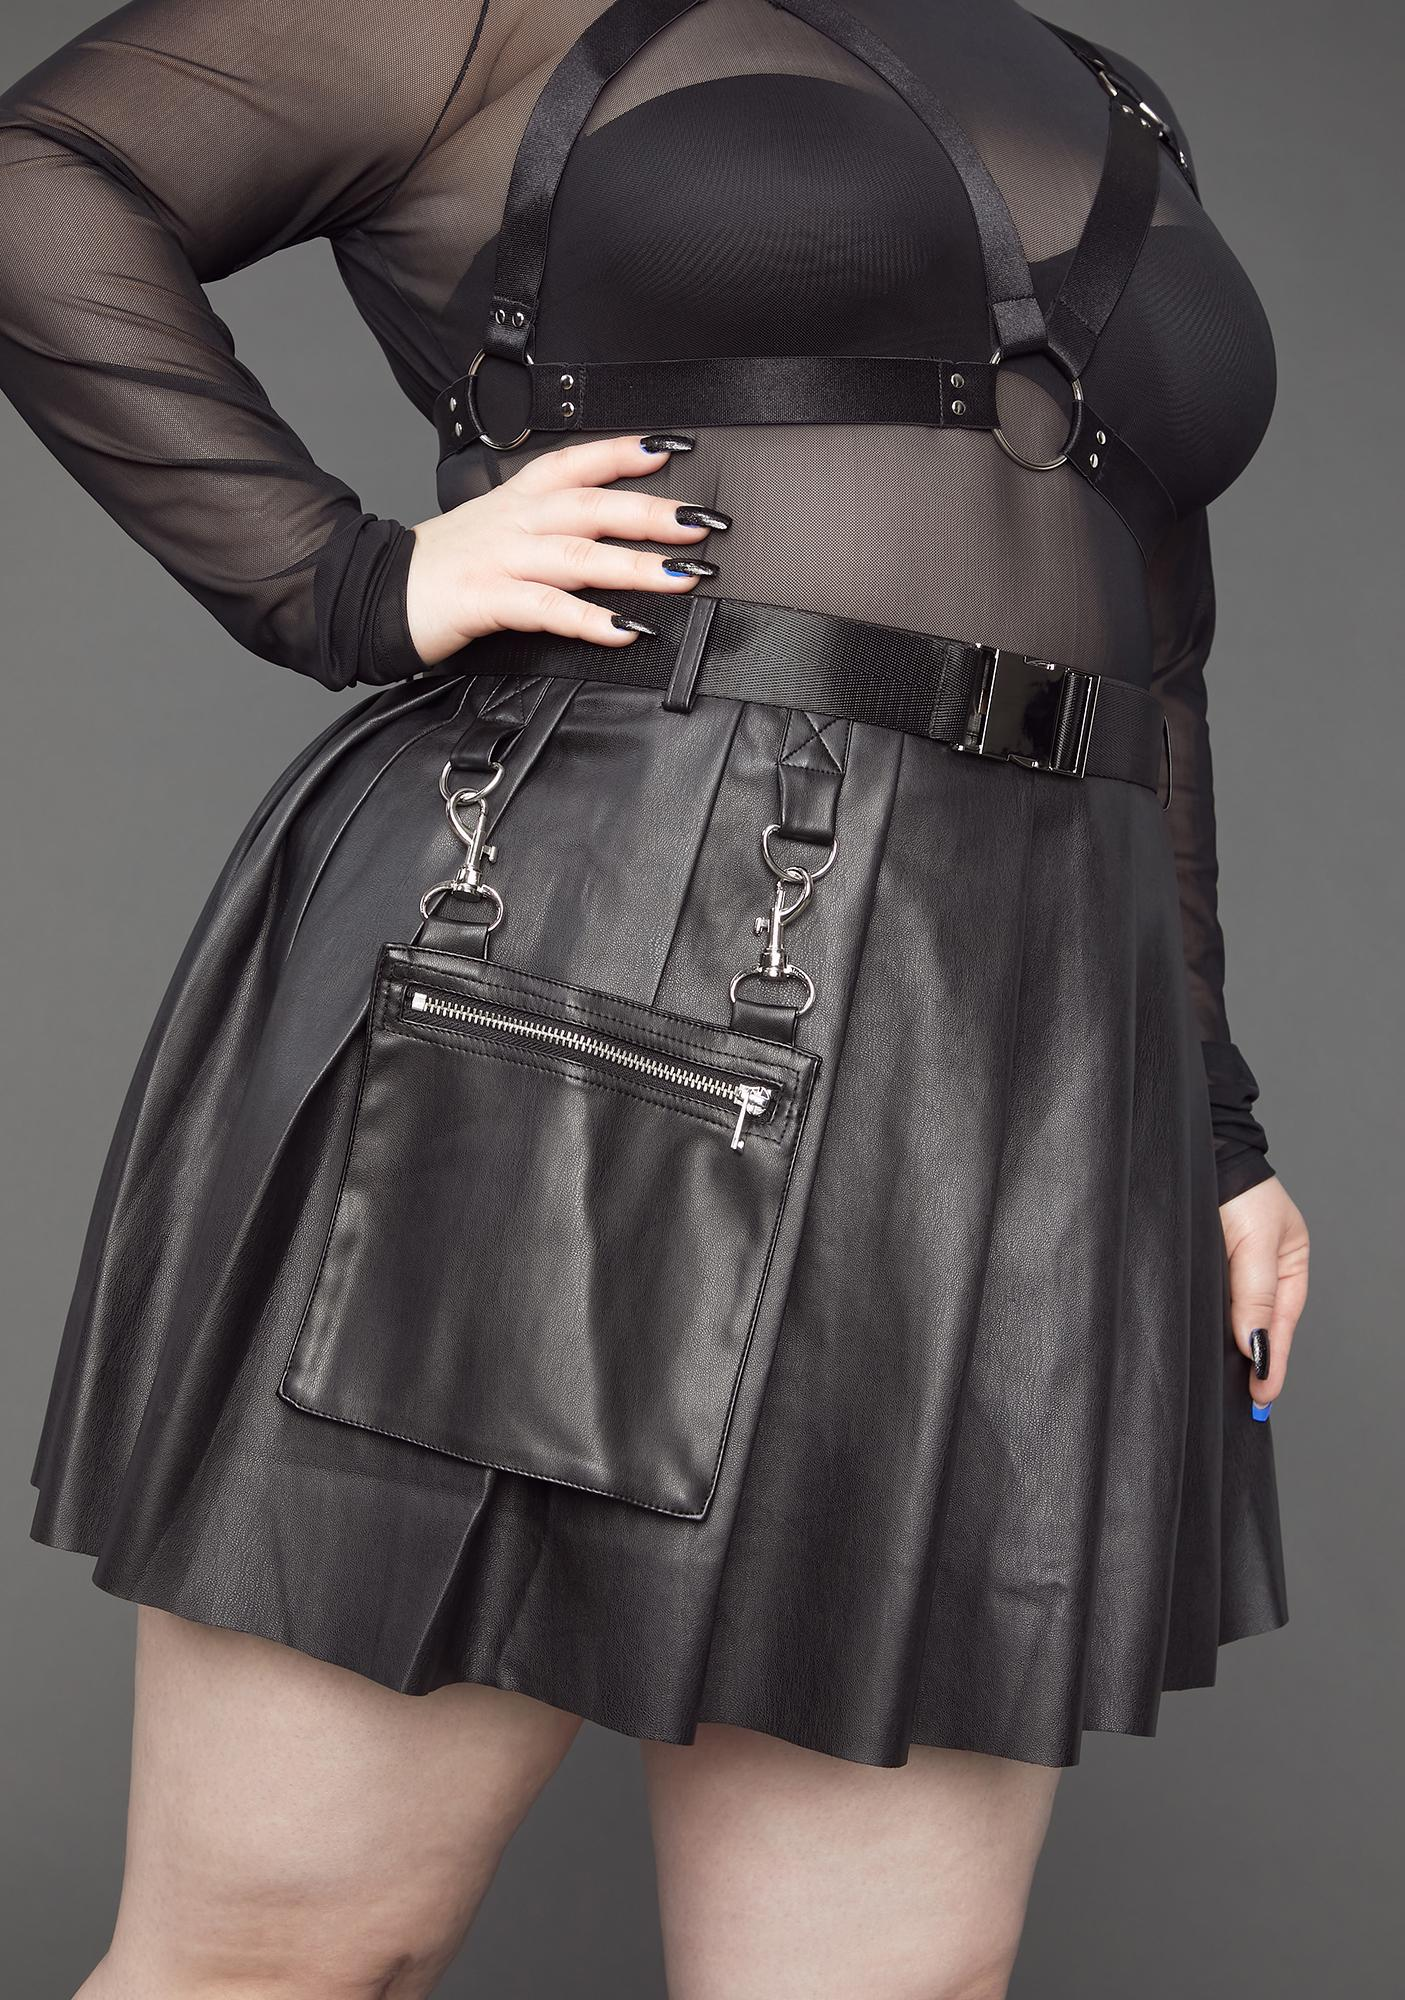 Poster Grl Always Ready For Action Pleated Skirt